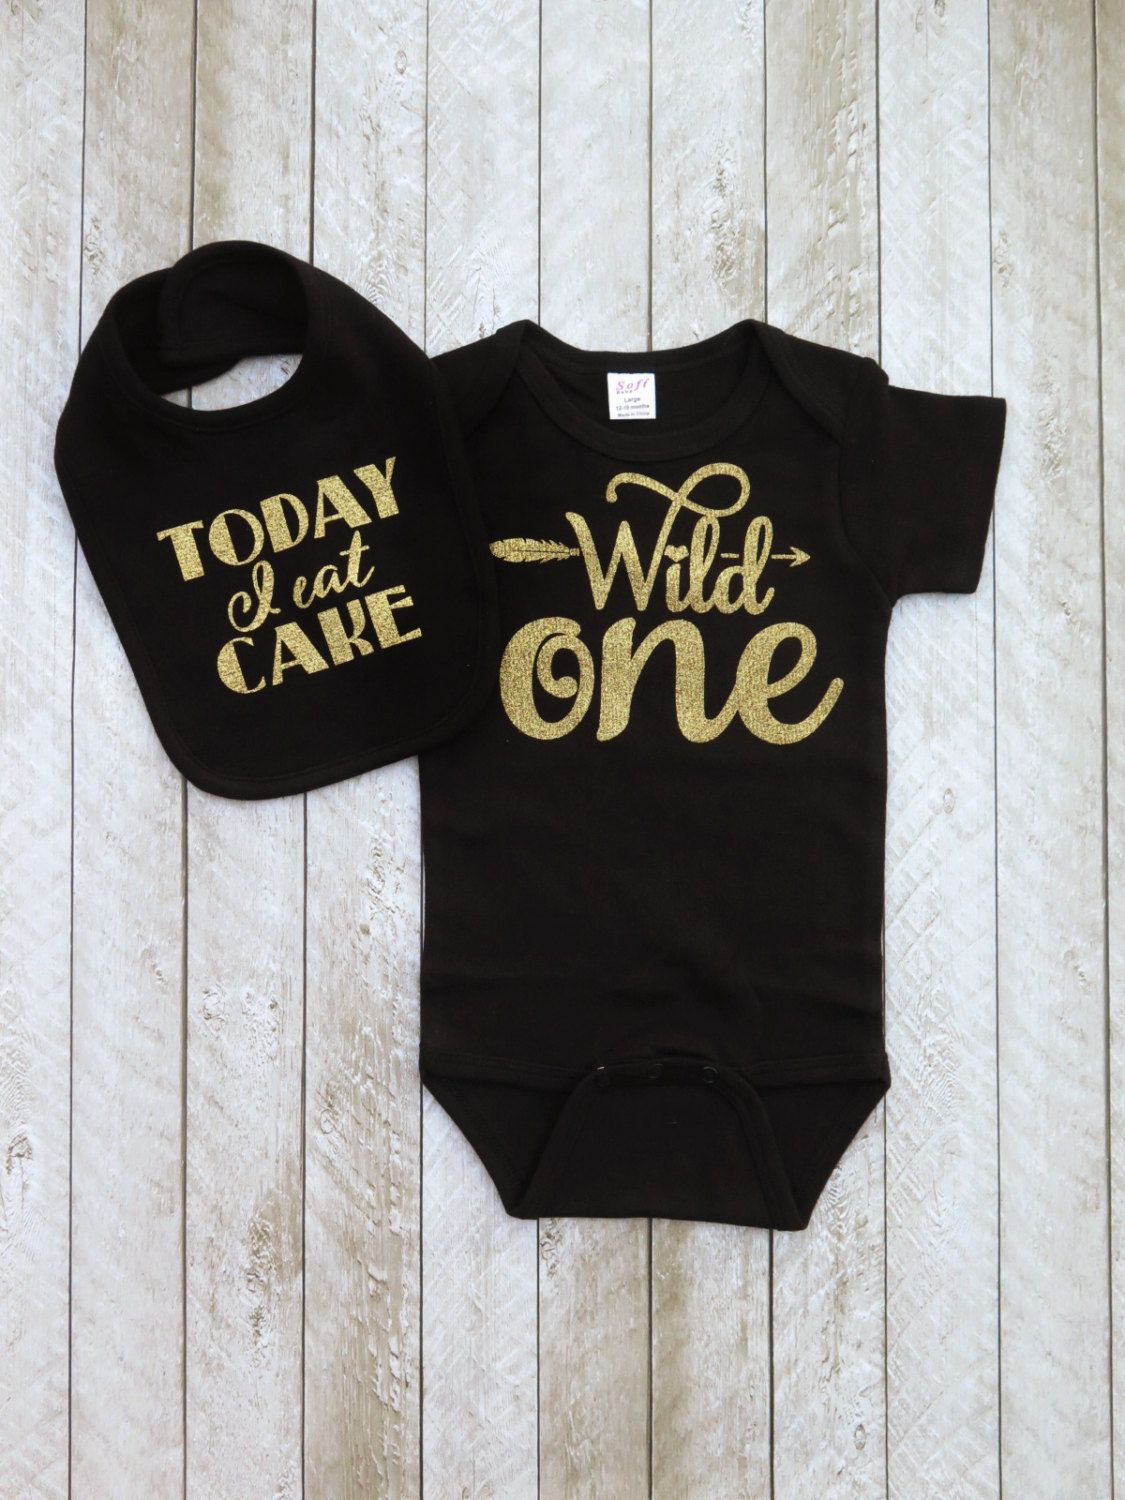 Wild one first birthday outfit Black and gold first birthday outfit One year old outfit Baby girl first birthday outfit Today I eat cake